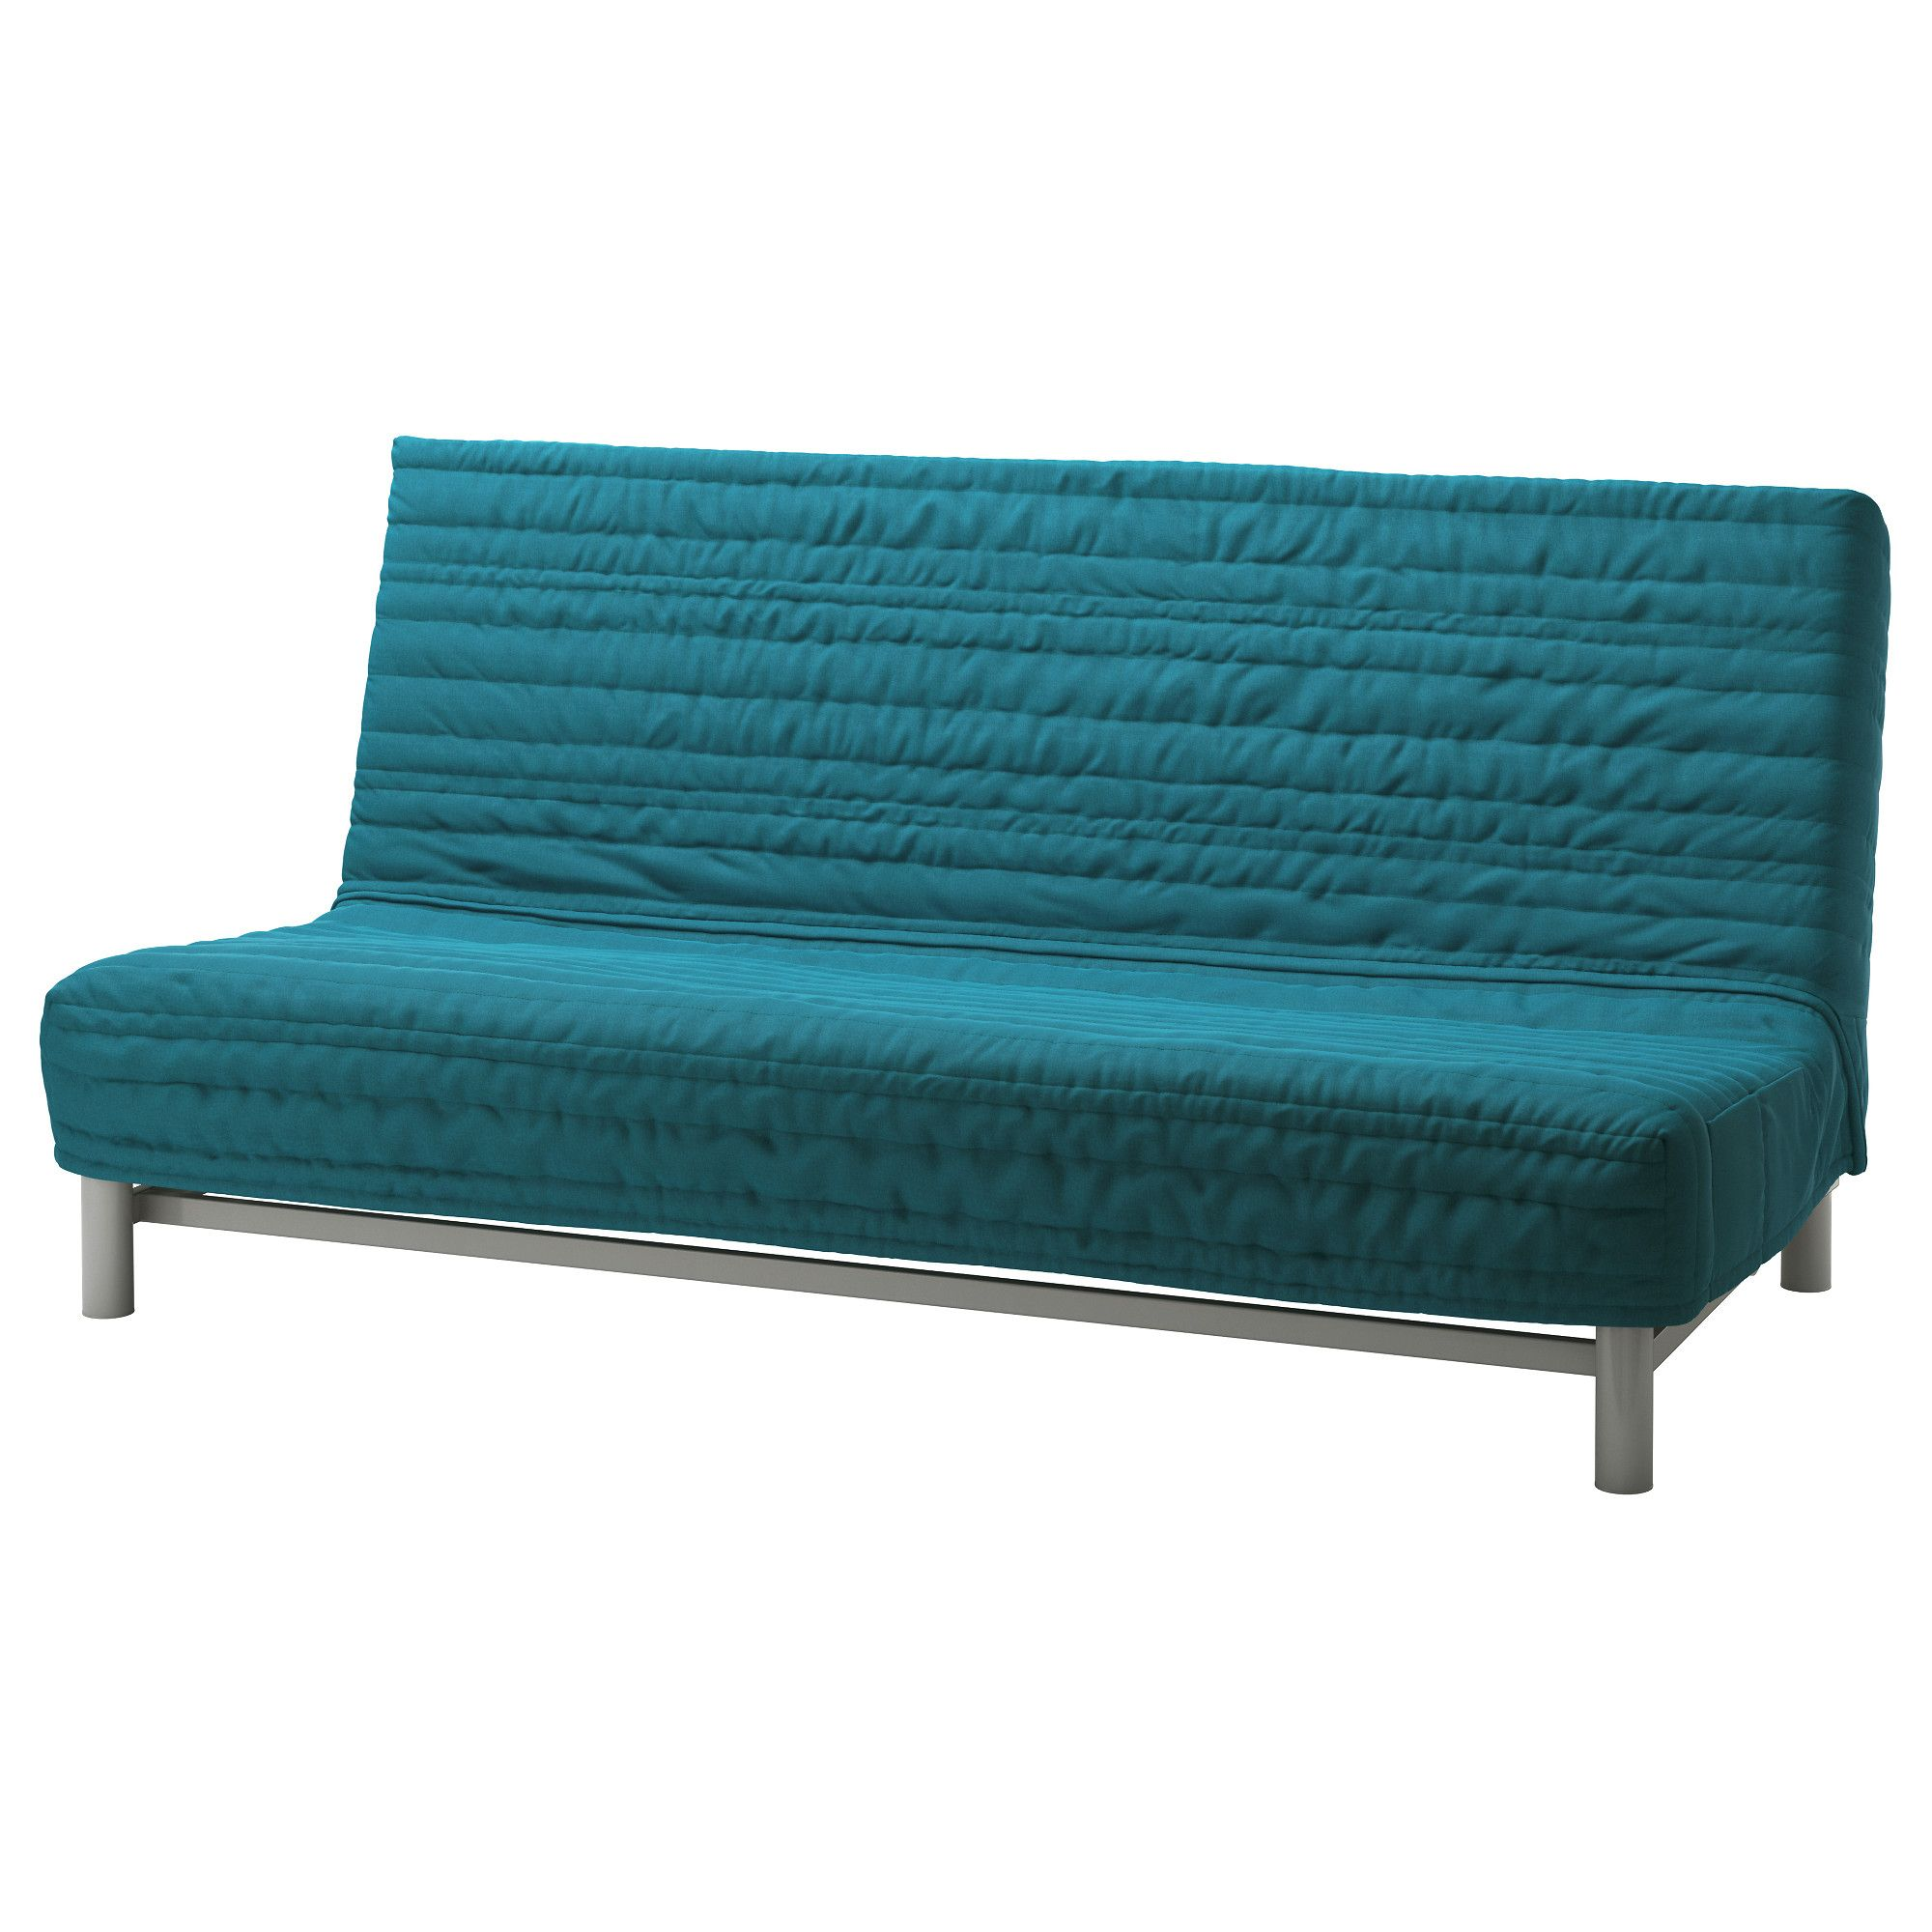 Ikea Beddinge Lovas Sofa Bed Knisa Turquoise Extra Covers